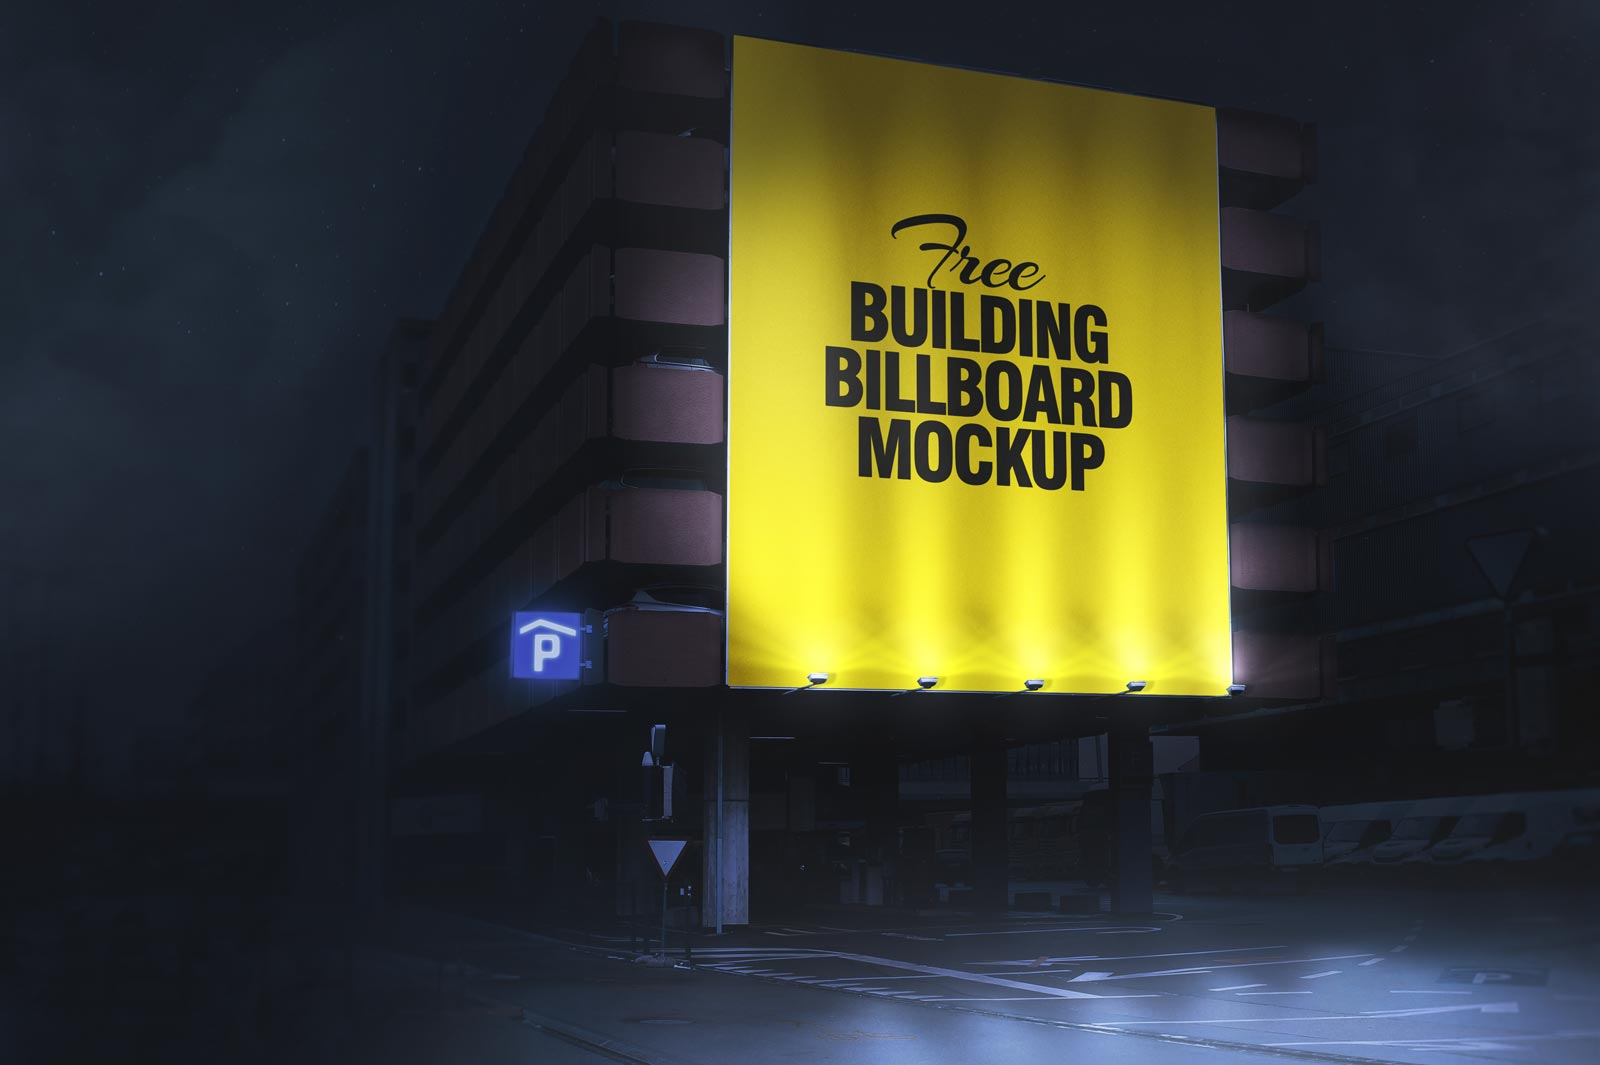 Free Day Amp Night Outdoor Building Billboard Mockup Psd